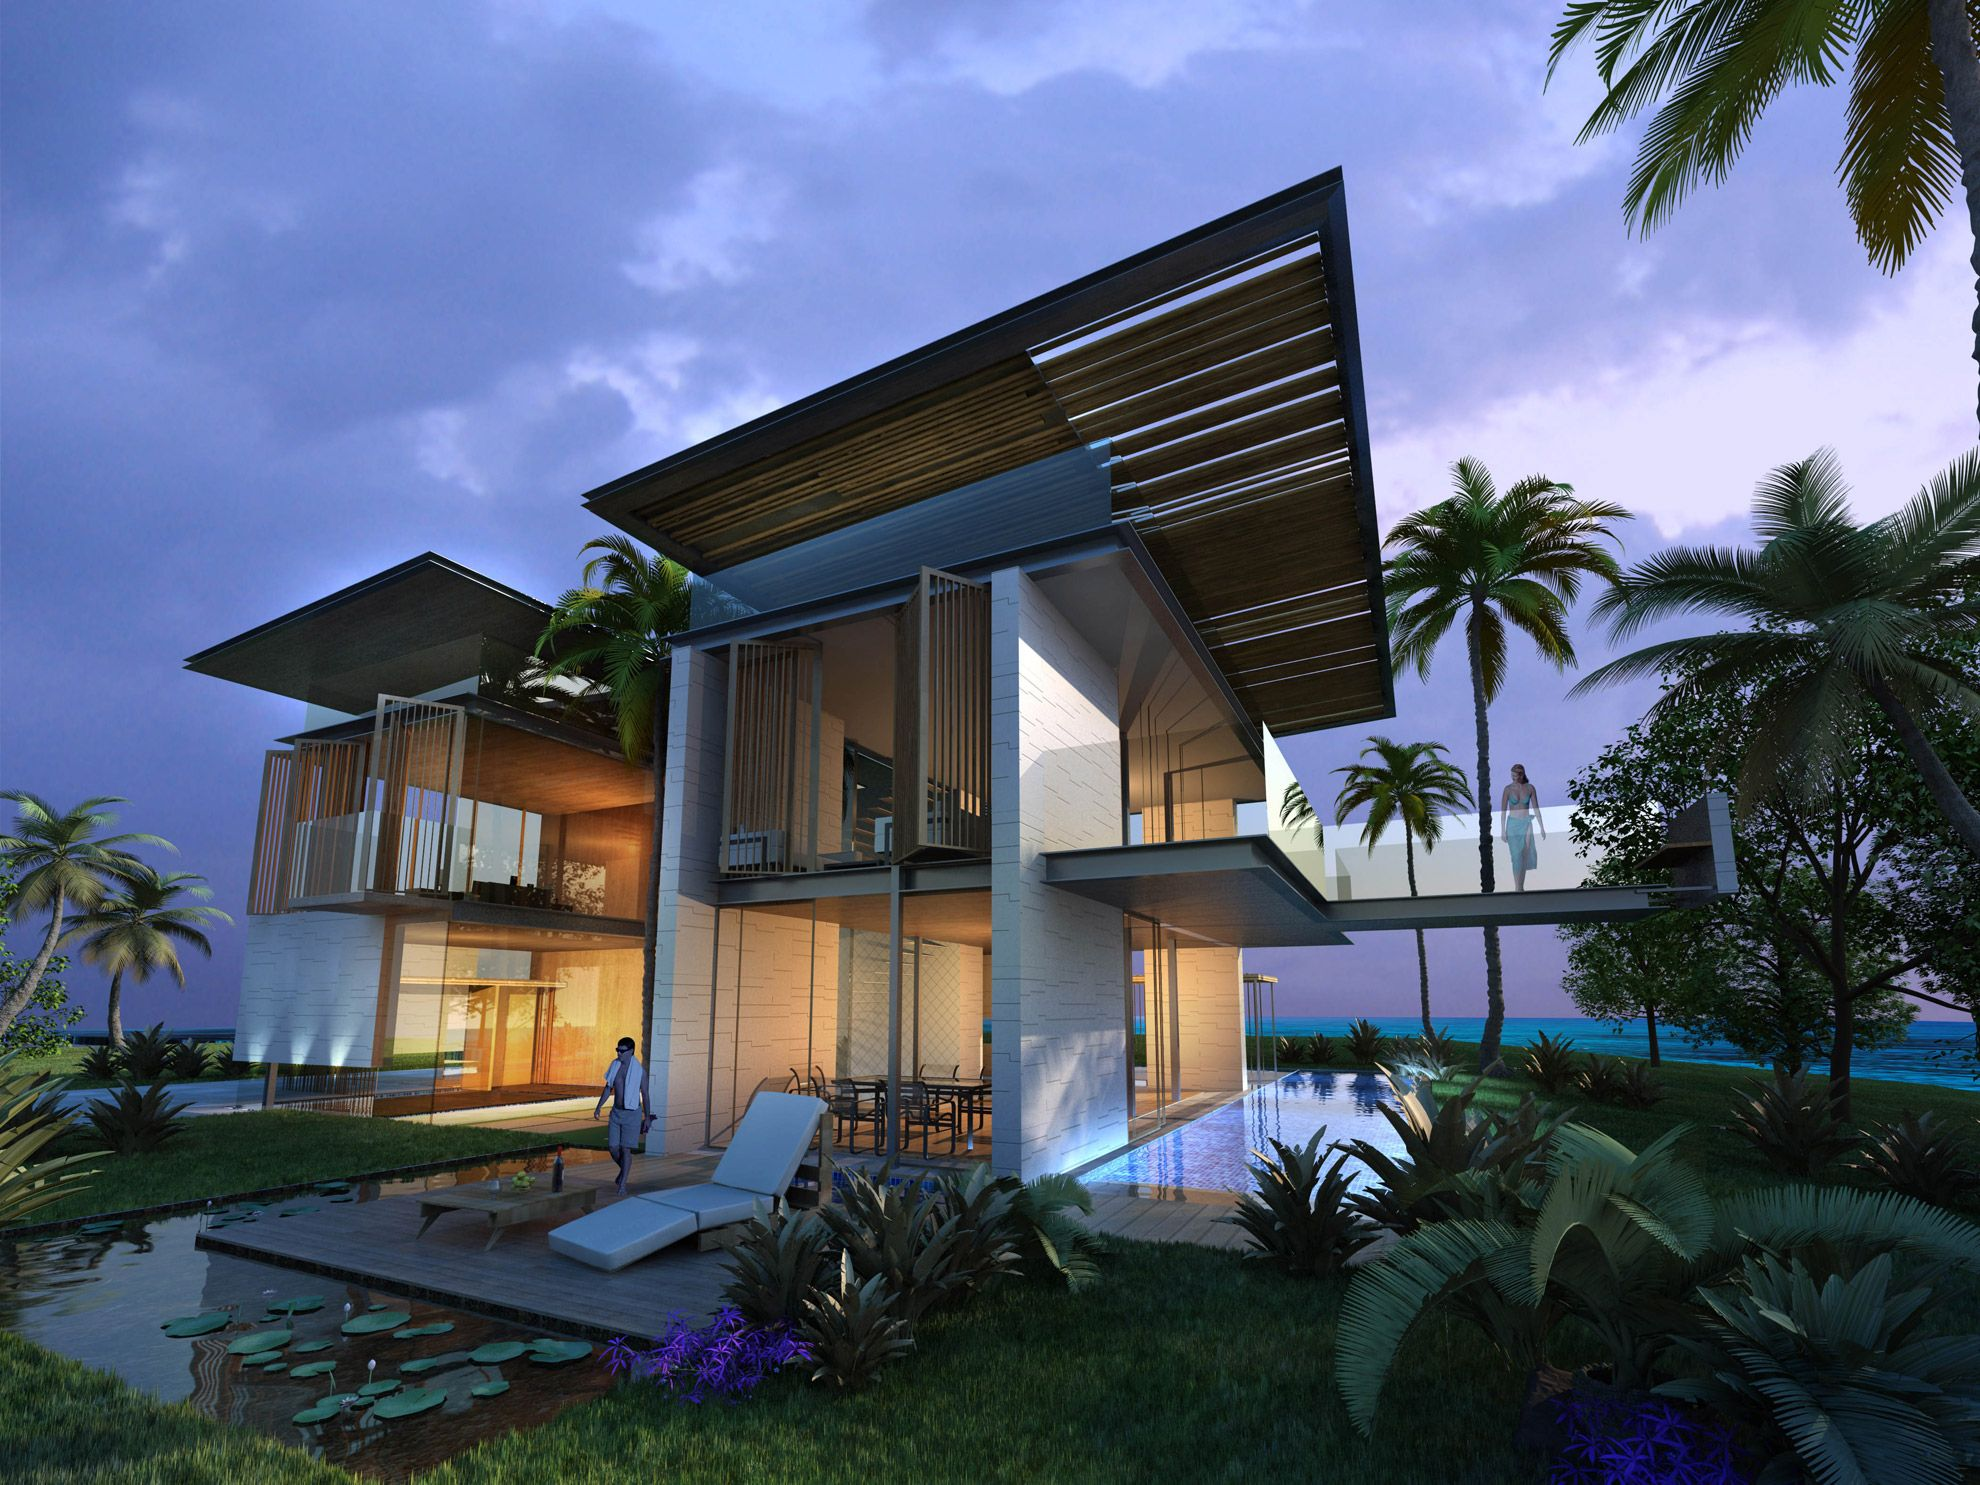 luxury residential houses architects hainan island - Google Search ...